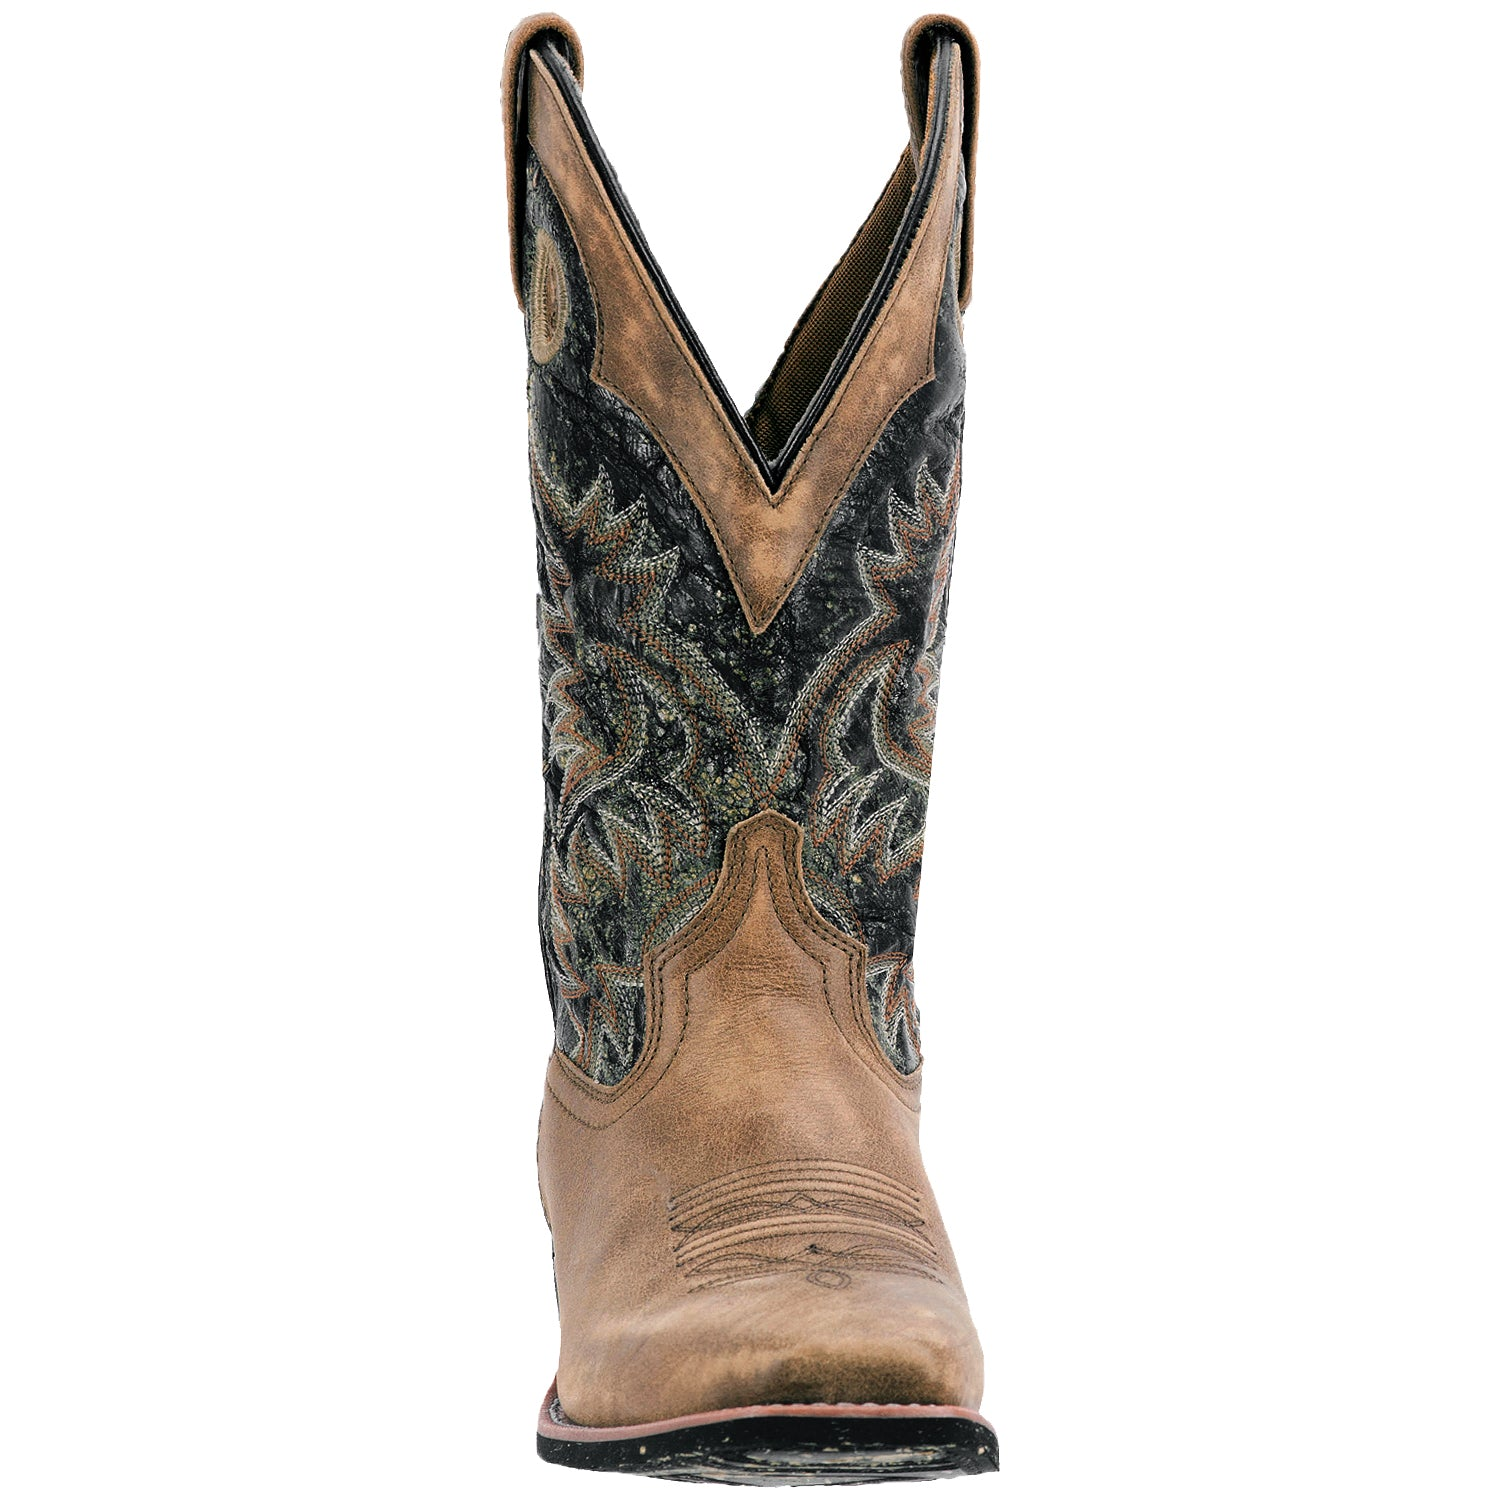 STILLWATER LEATHER BOOT 4254293852202